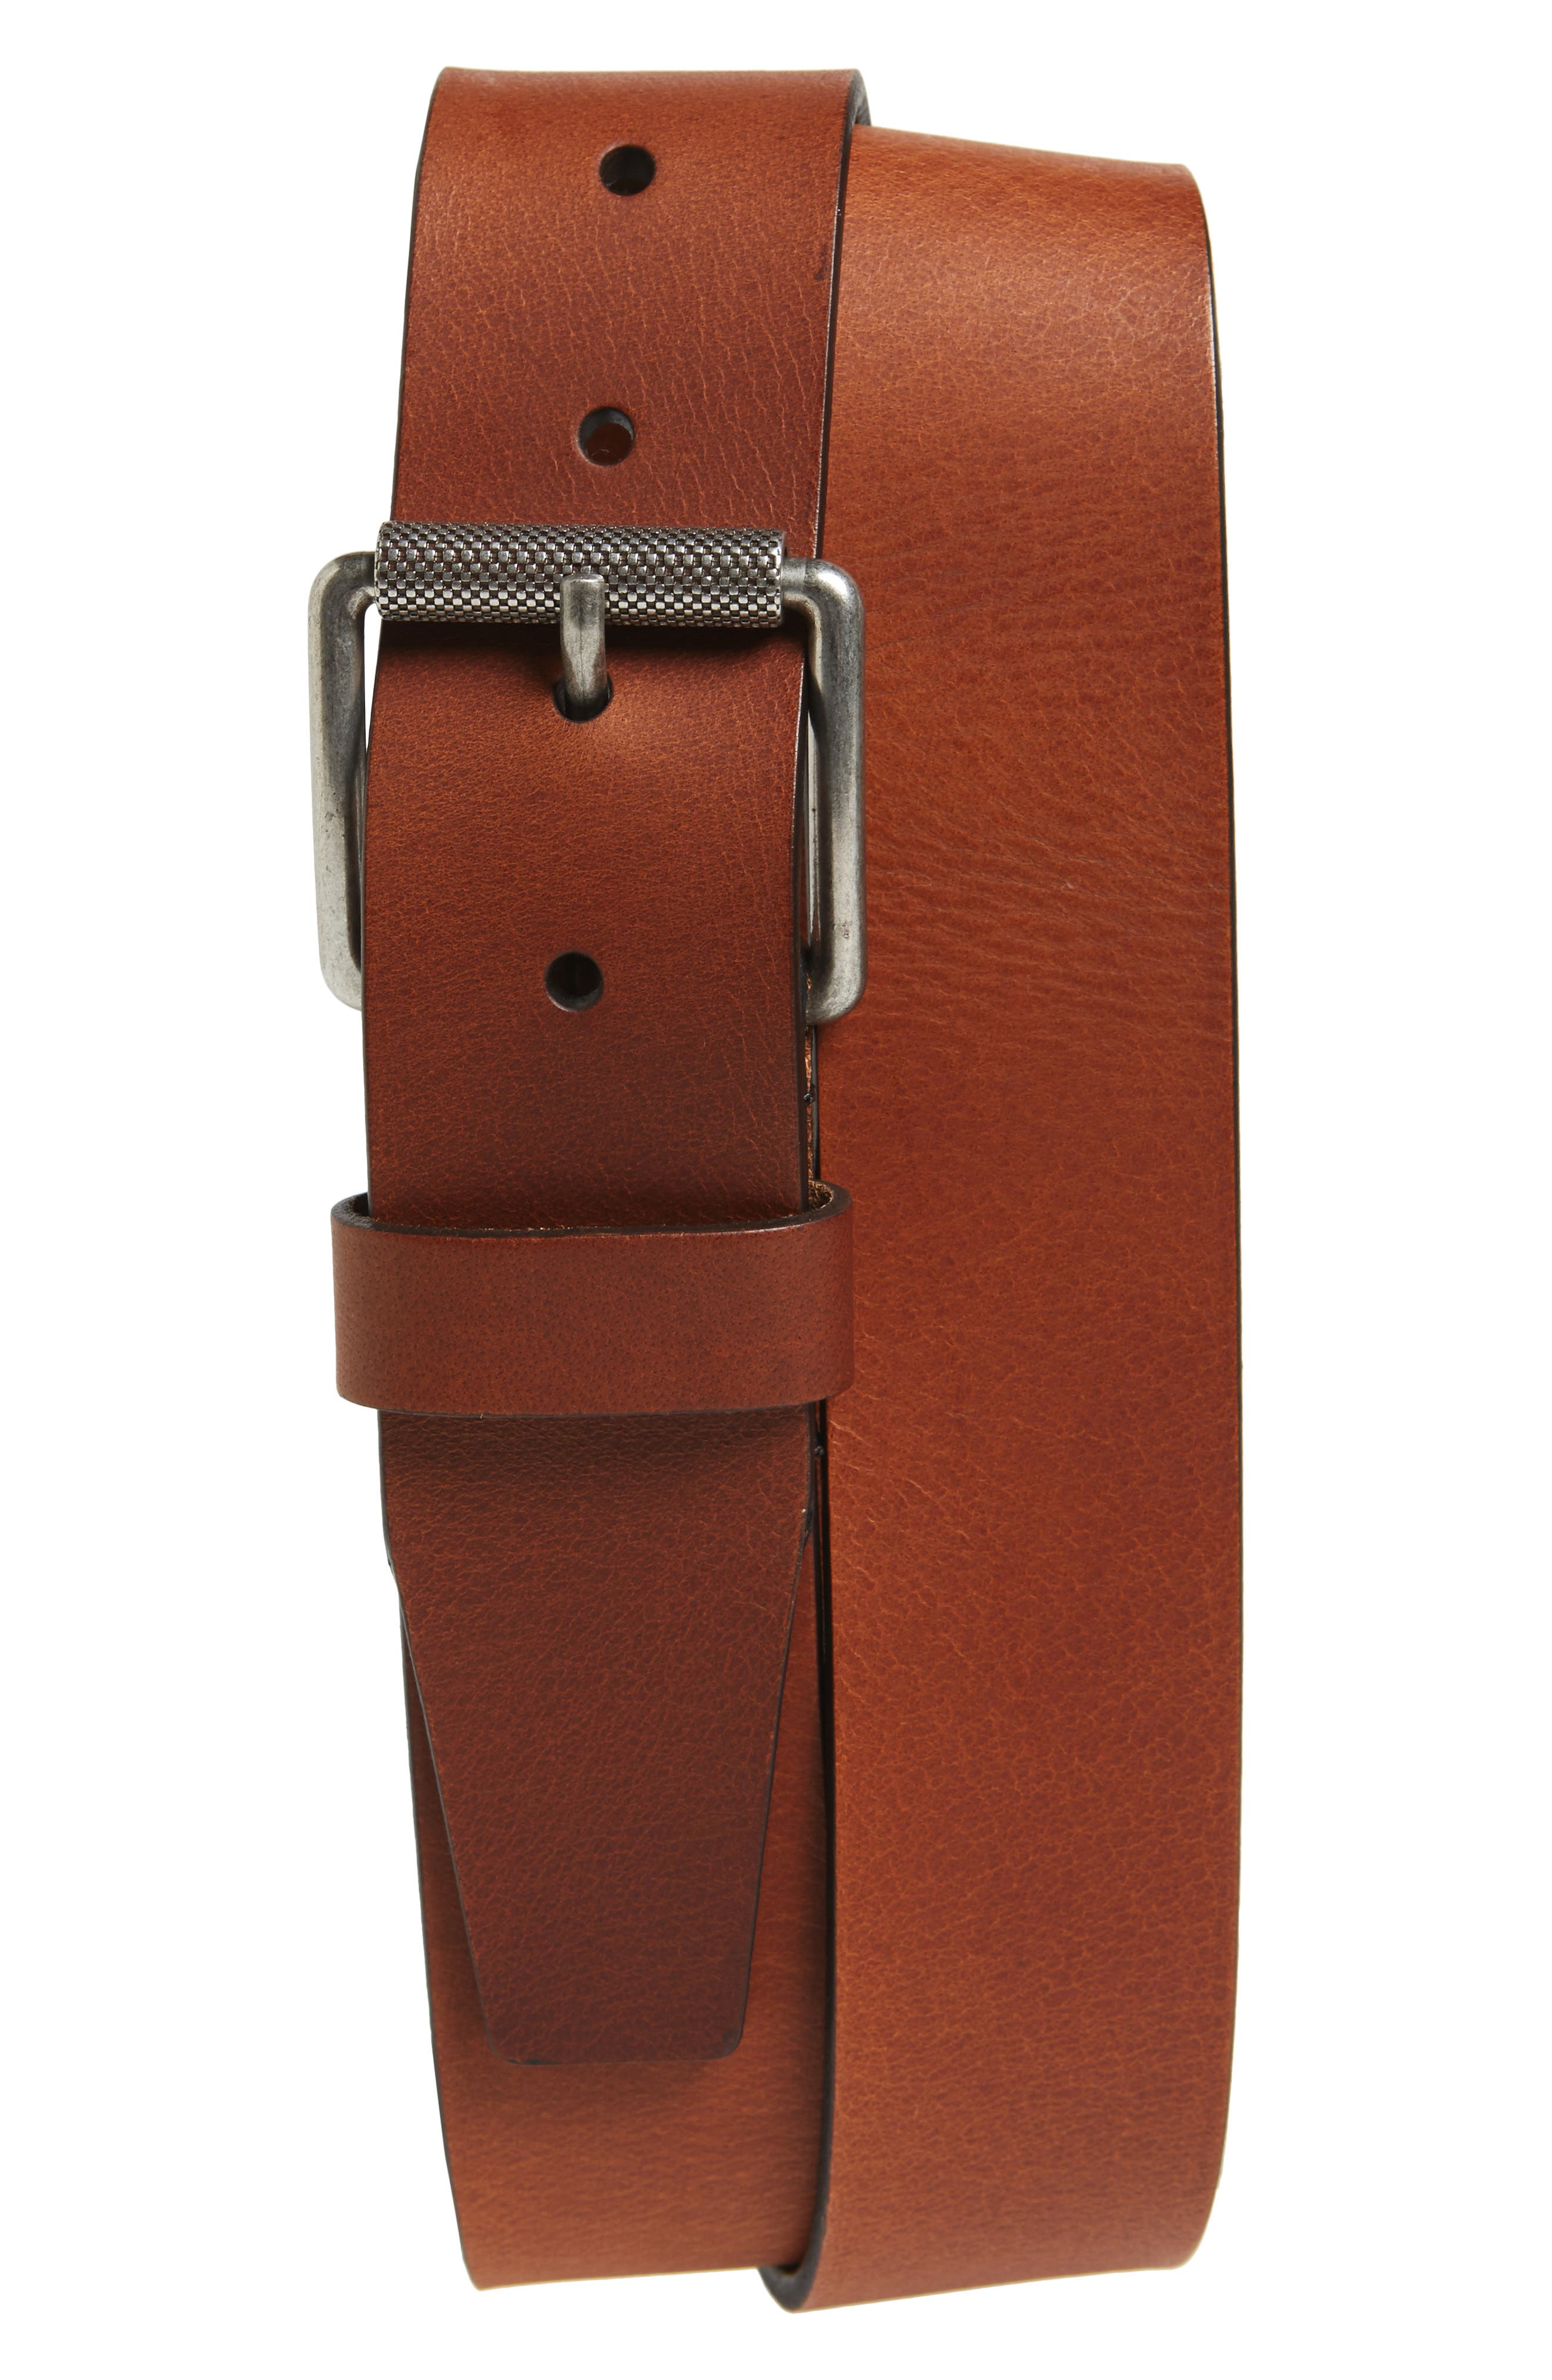 Roller Buckle Leather Belt,                             Main thumbnail 1, color,                             211